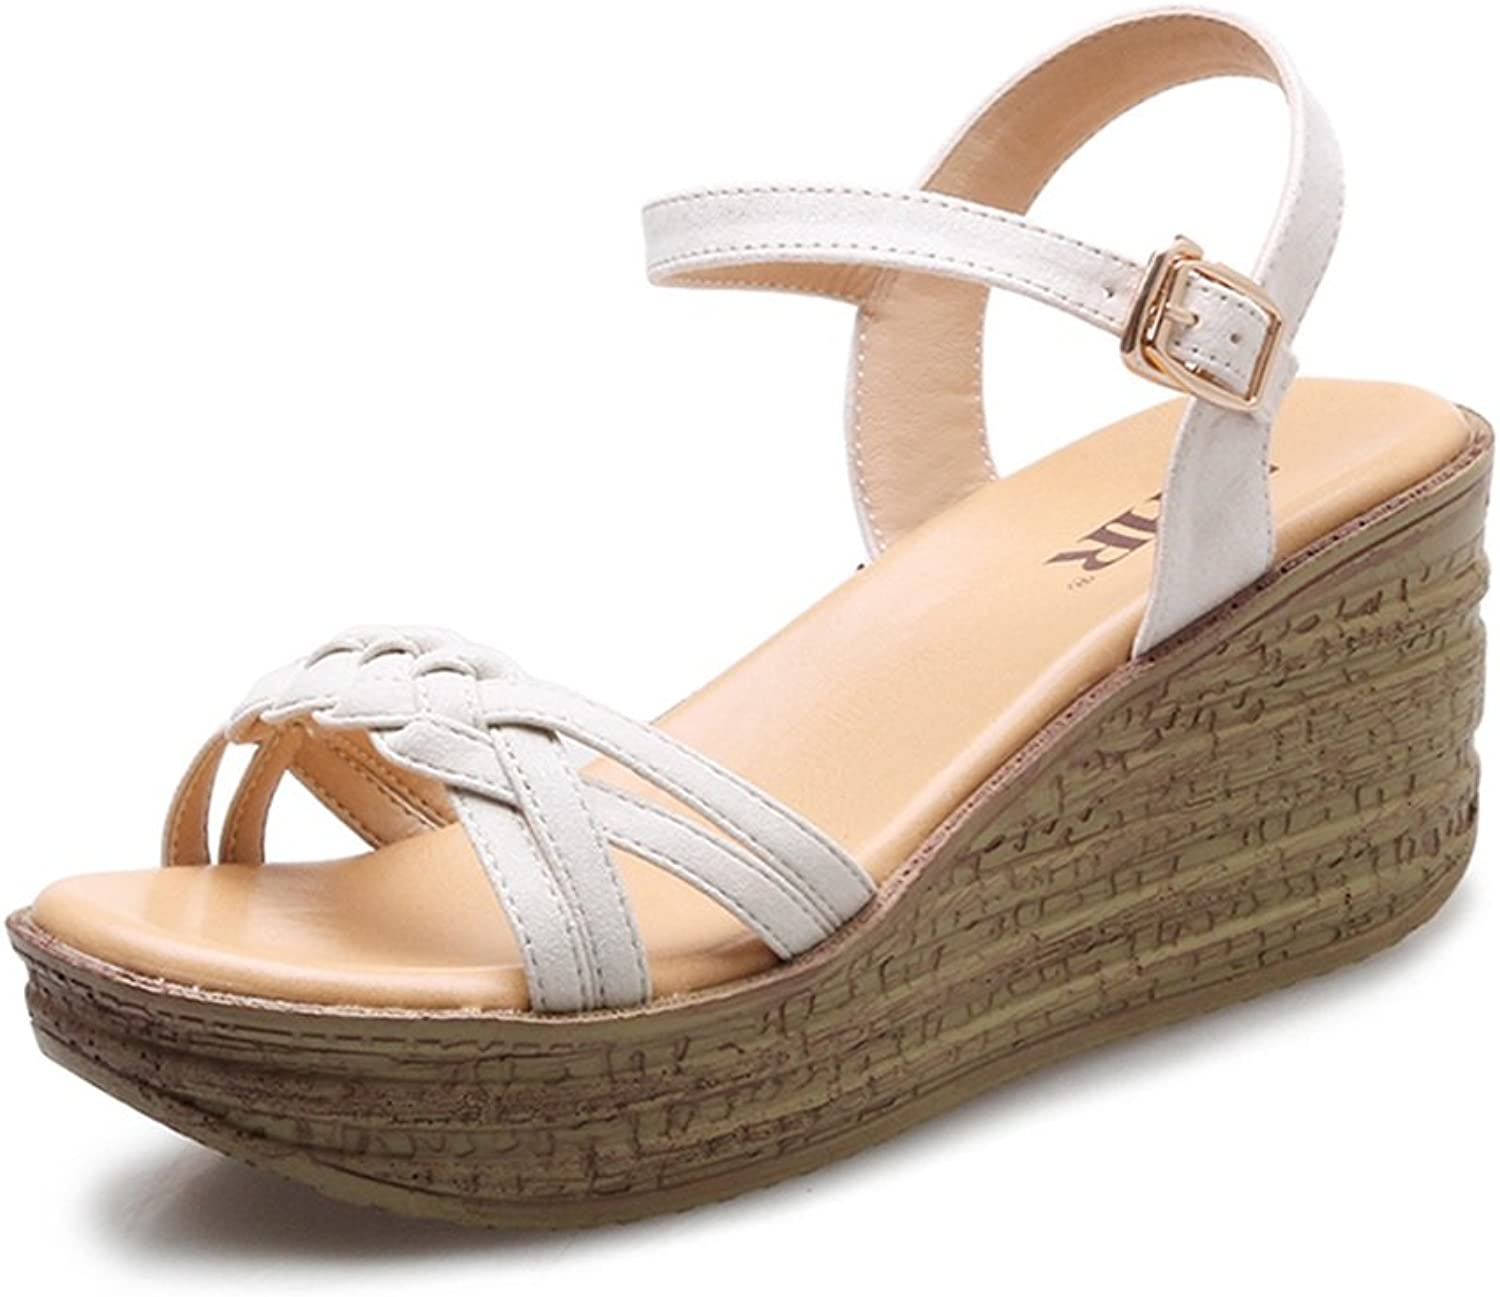 Summer Muffin Sandals Bohemian high-Heeled shoes Buckle Women's shoes (color   Beige, Size   35)